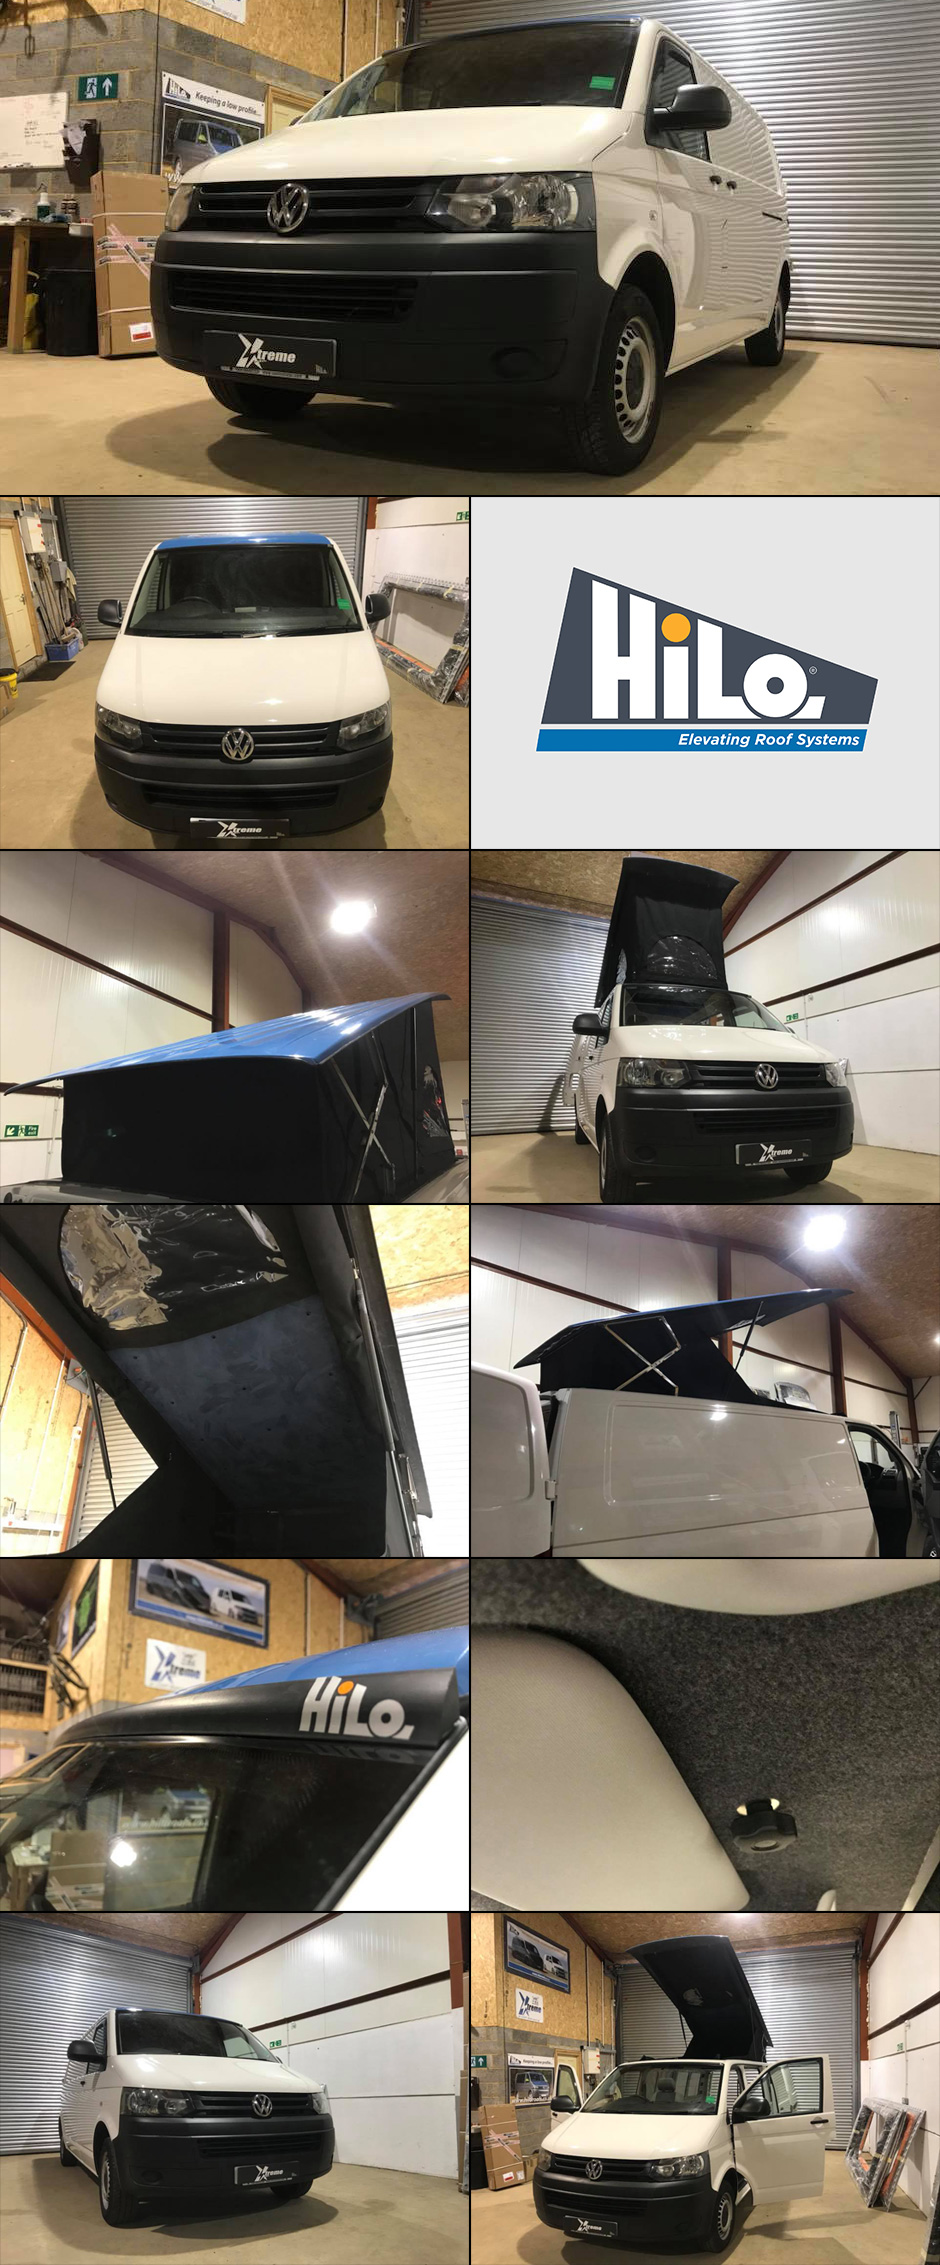 xtremevan vw t6 hiloroof fitters van conversions